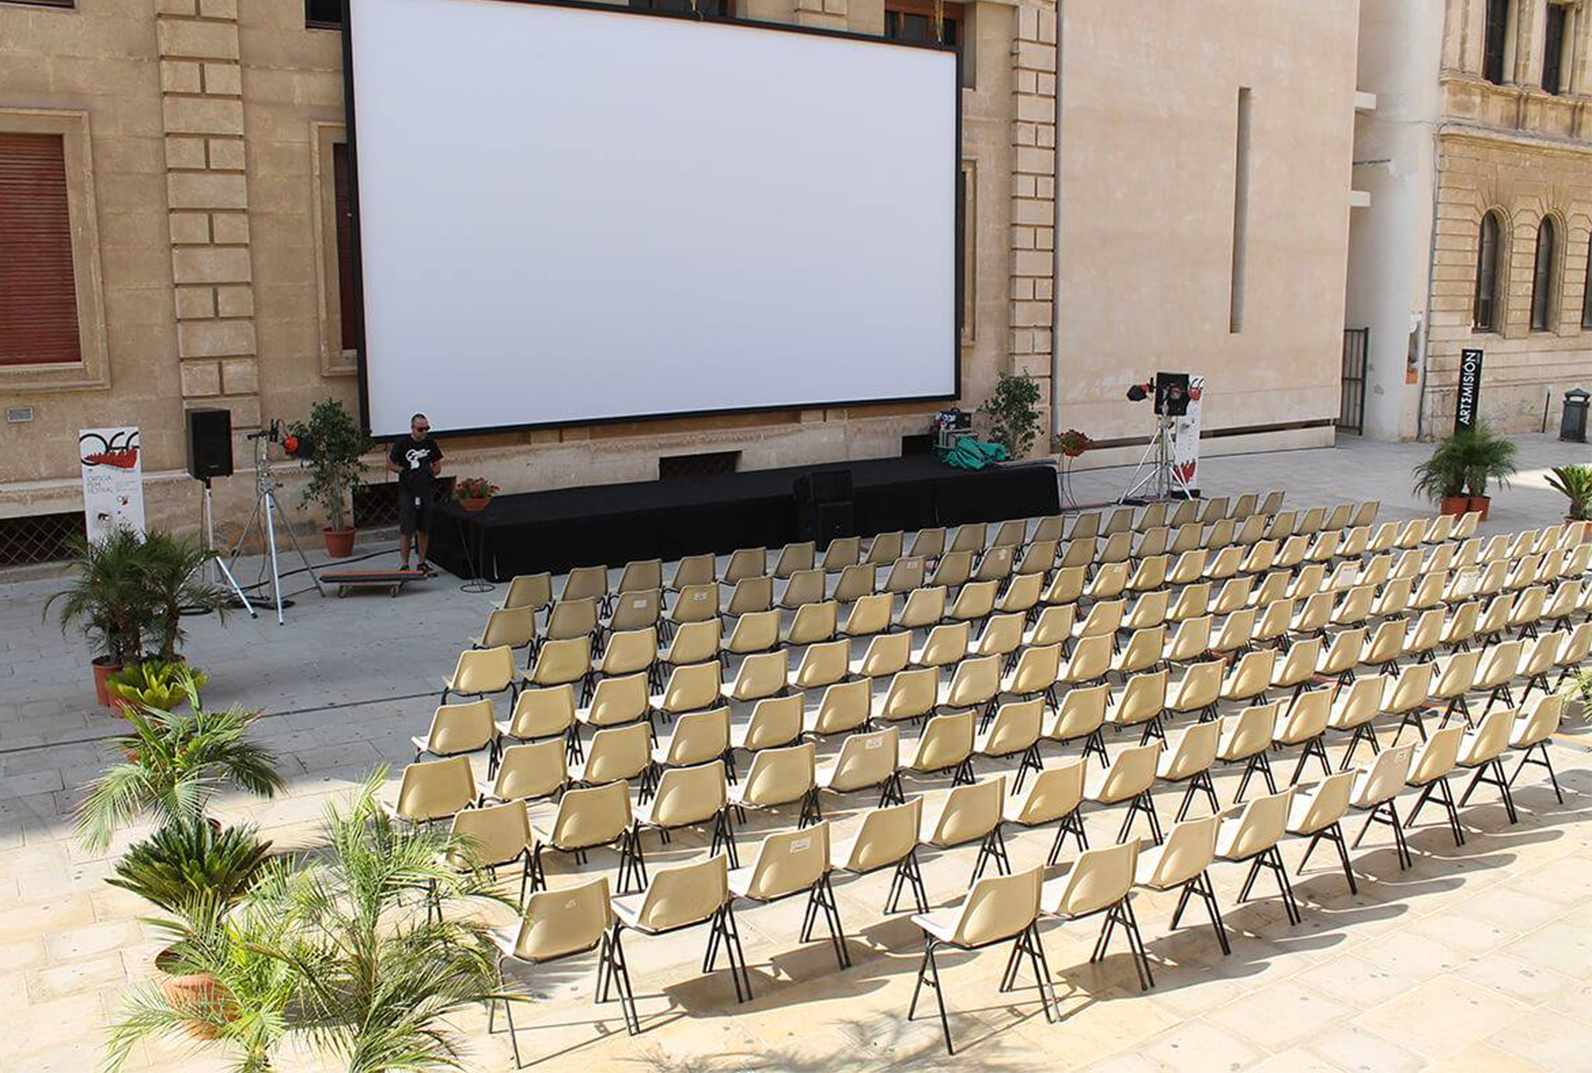 OFF9 - Location: Arena Minerva | Piazza Minerva, Siracusa